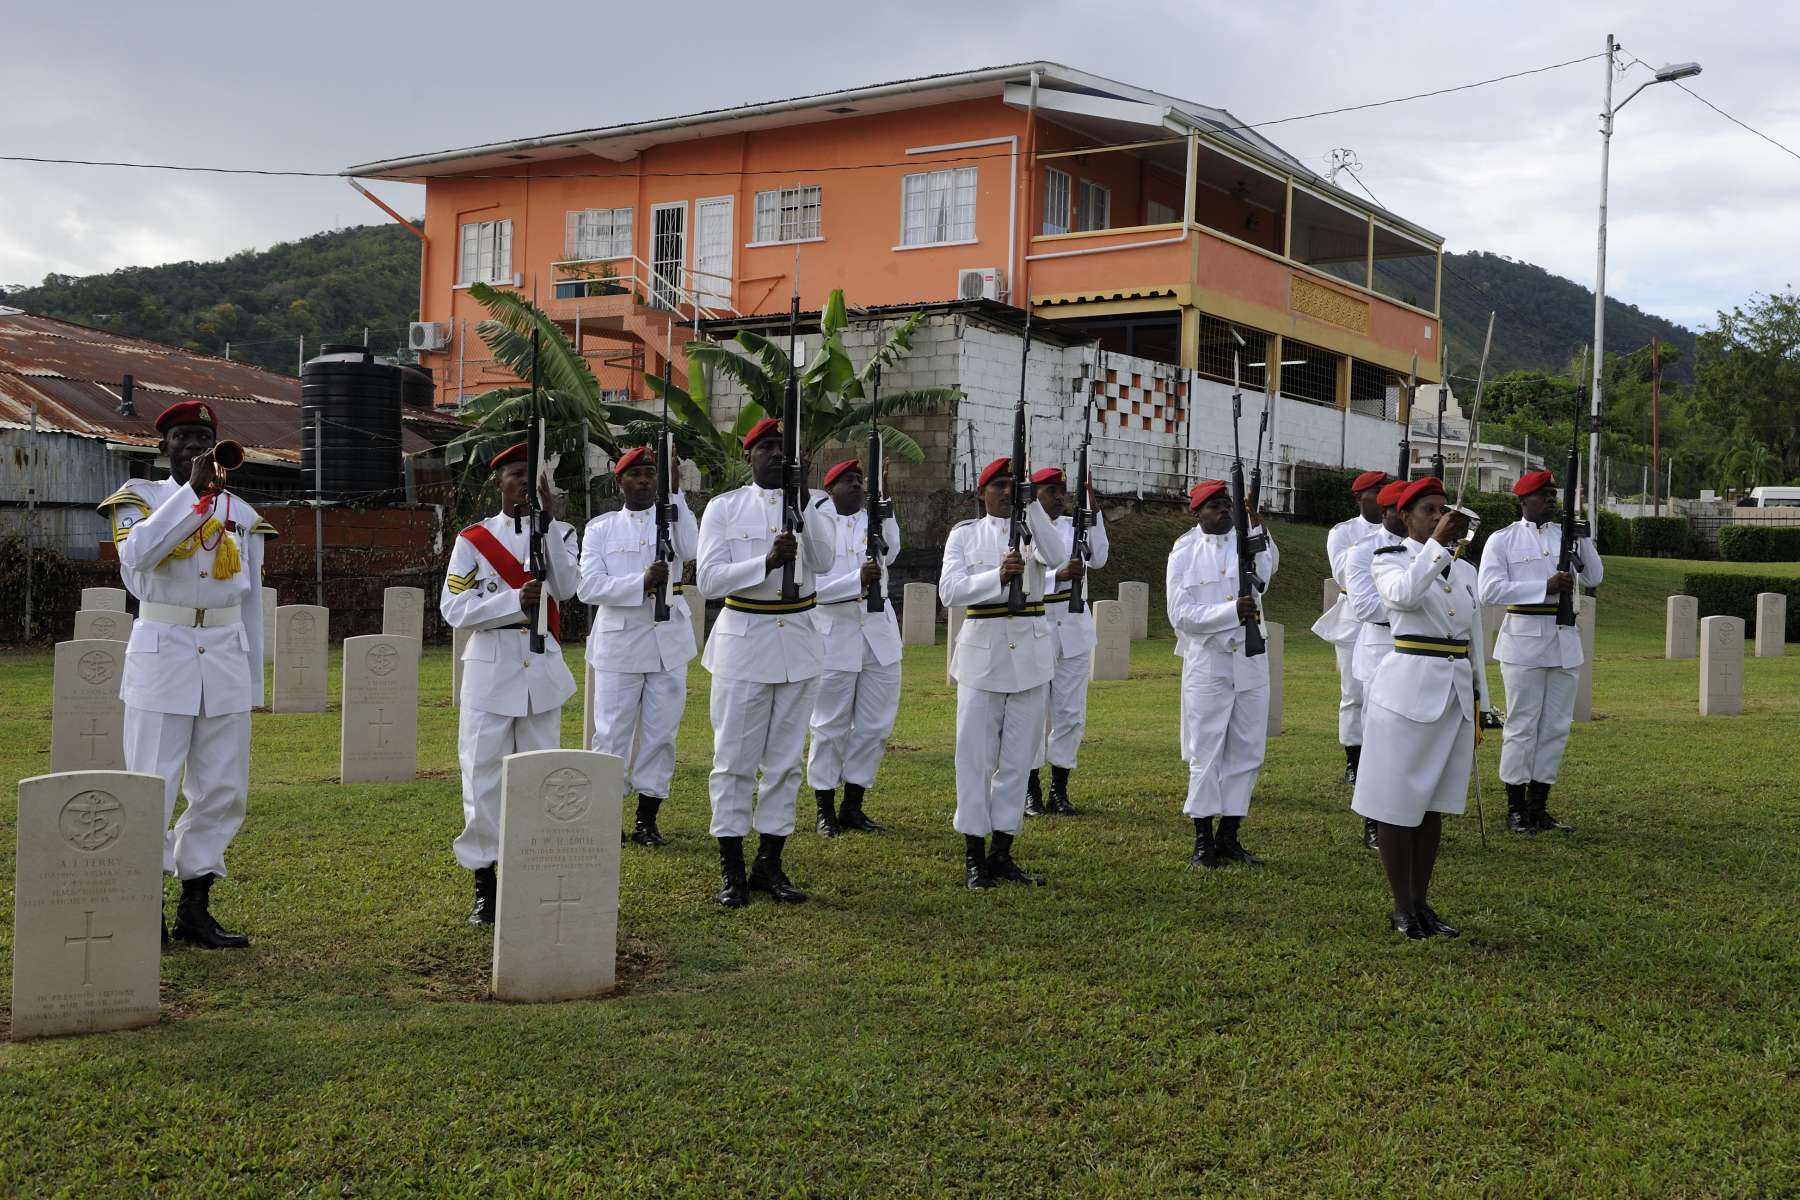 St. James Commonwealth Military Cemetery is located in Port of Spain, Trinidad and Tobago.